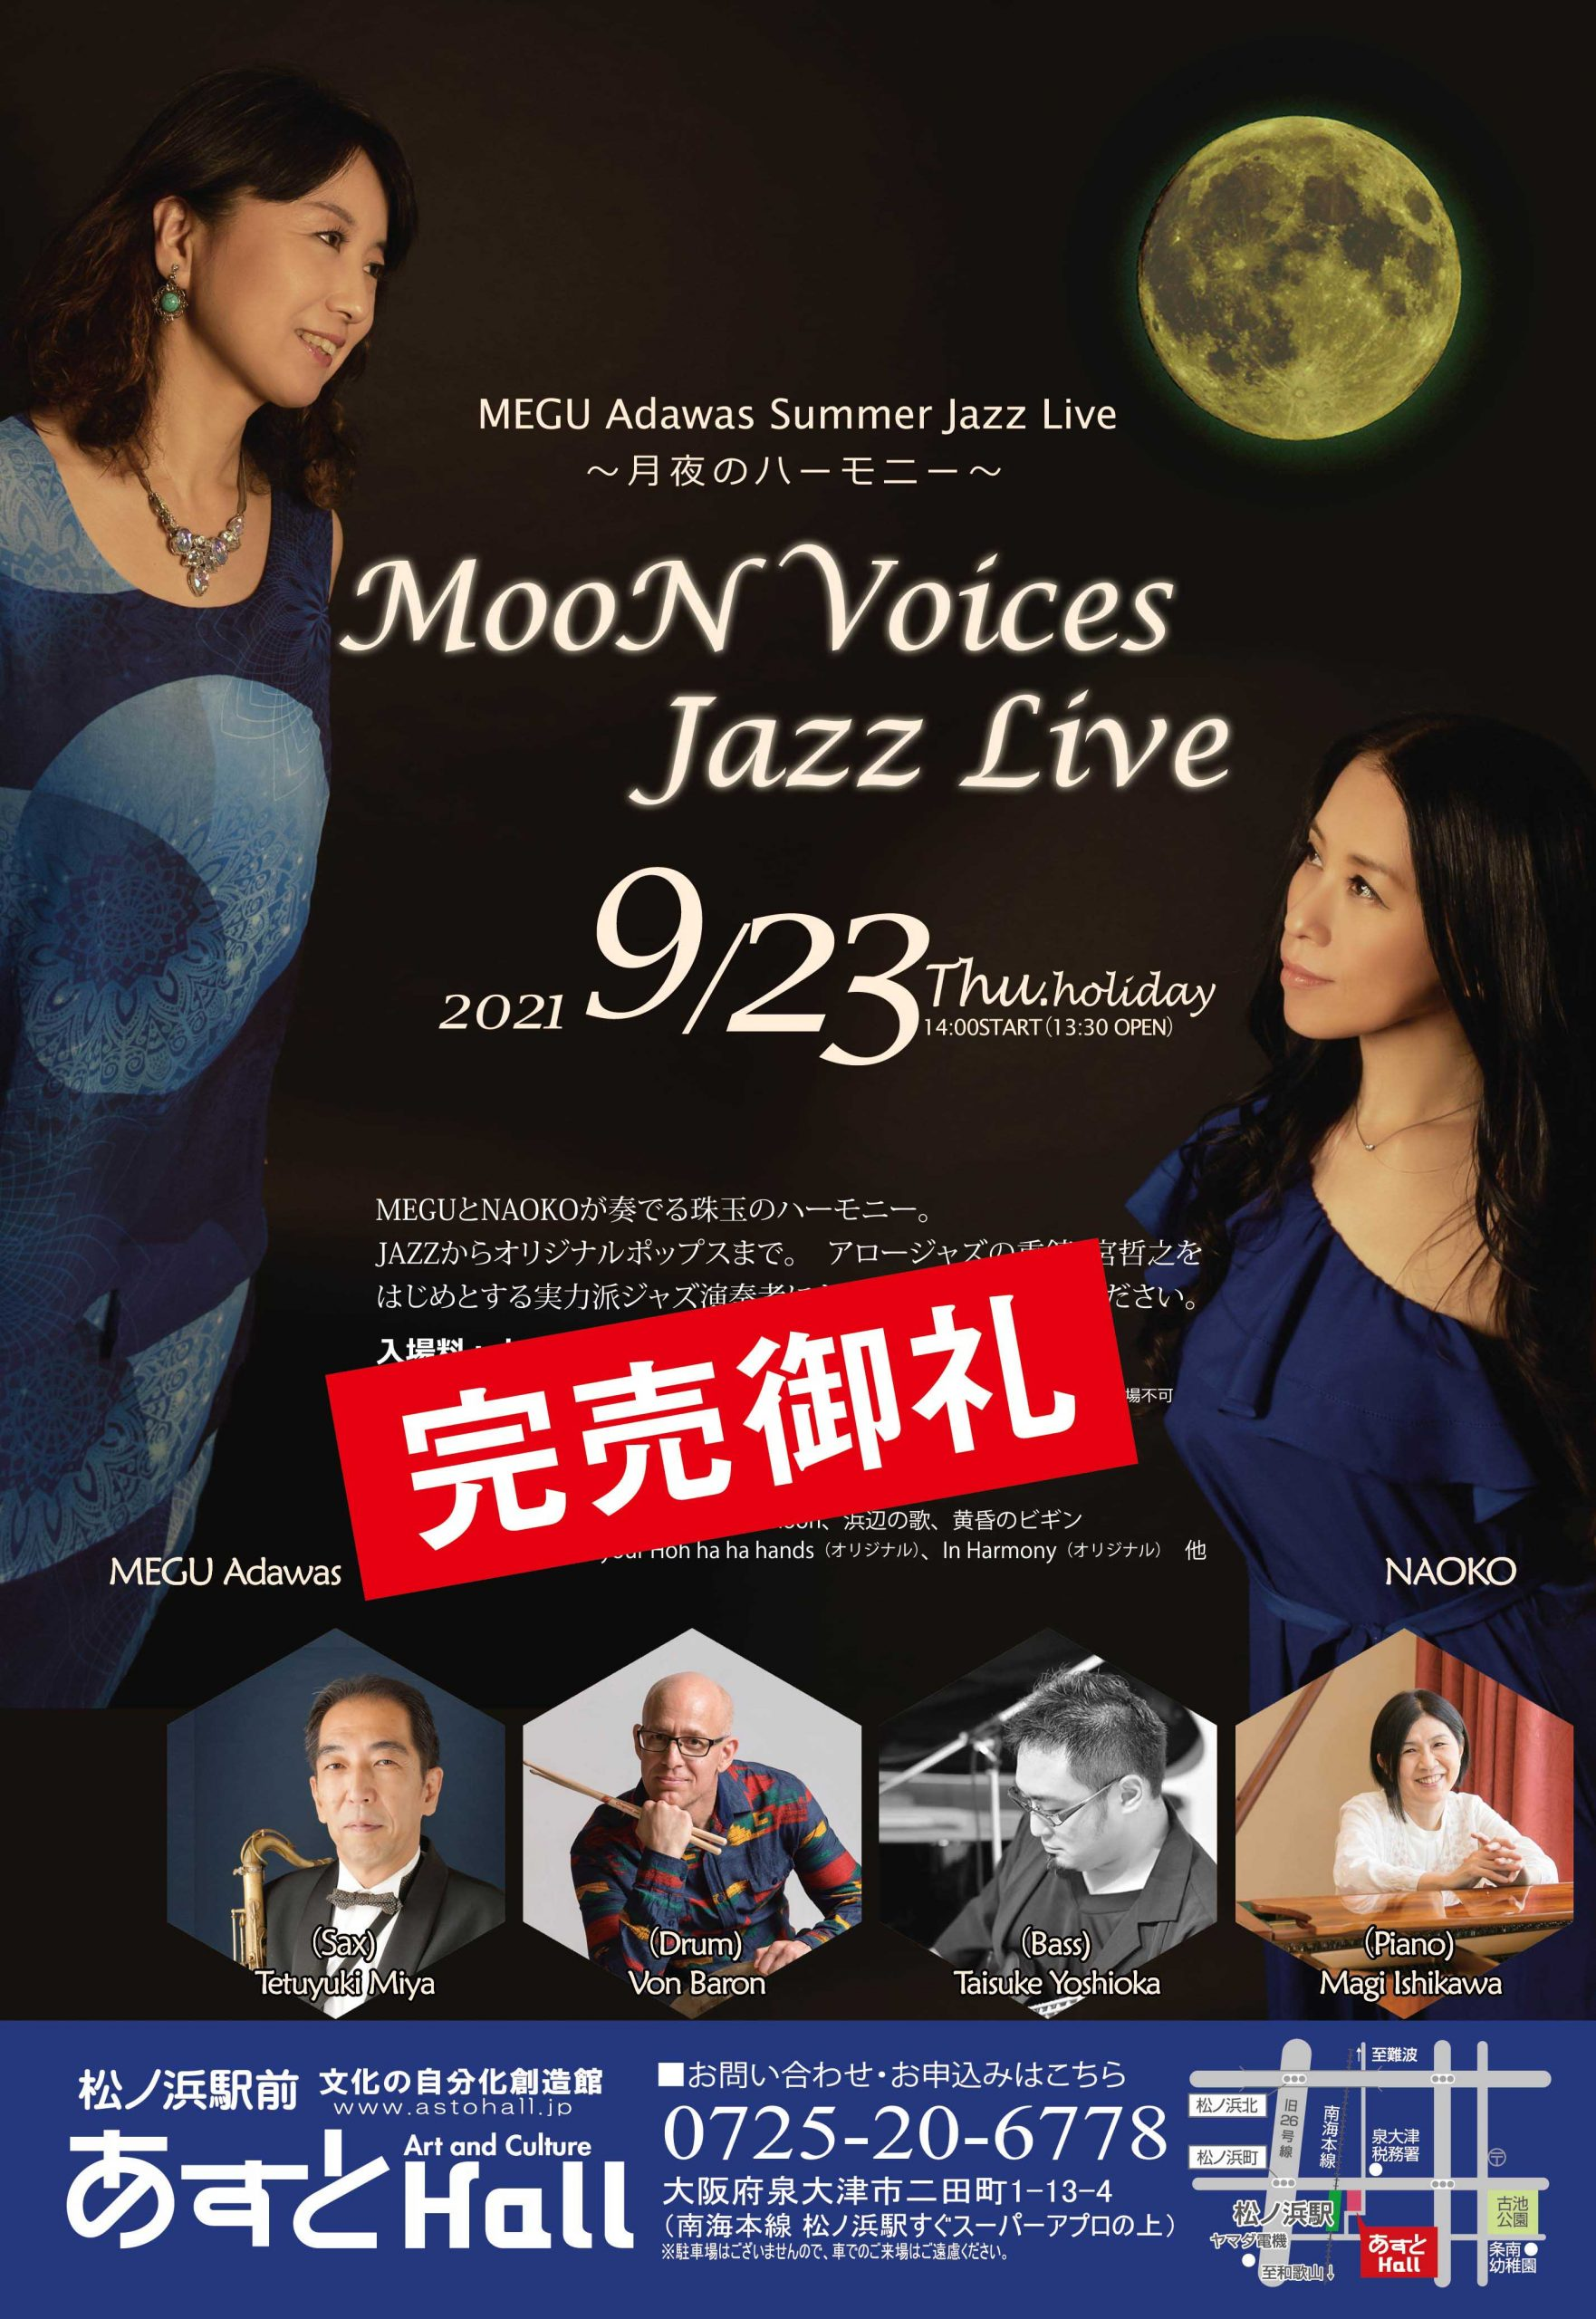 <font size=4>MEGU Adawas Summer Jazz Live</font><br>MooN Voices Jazz Live~月夜のハーモニー~